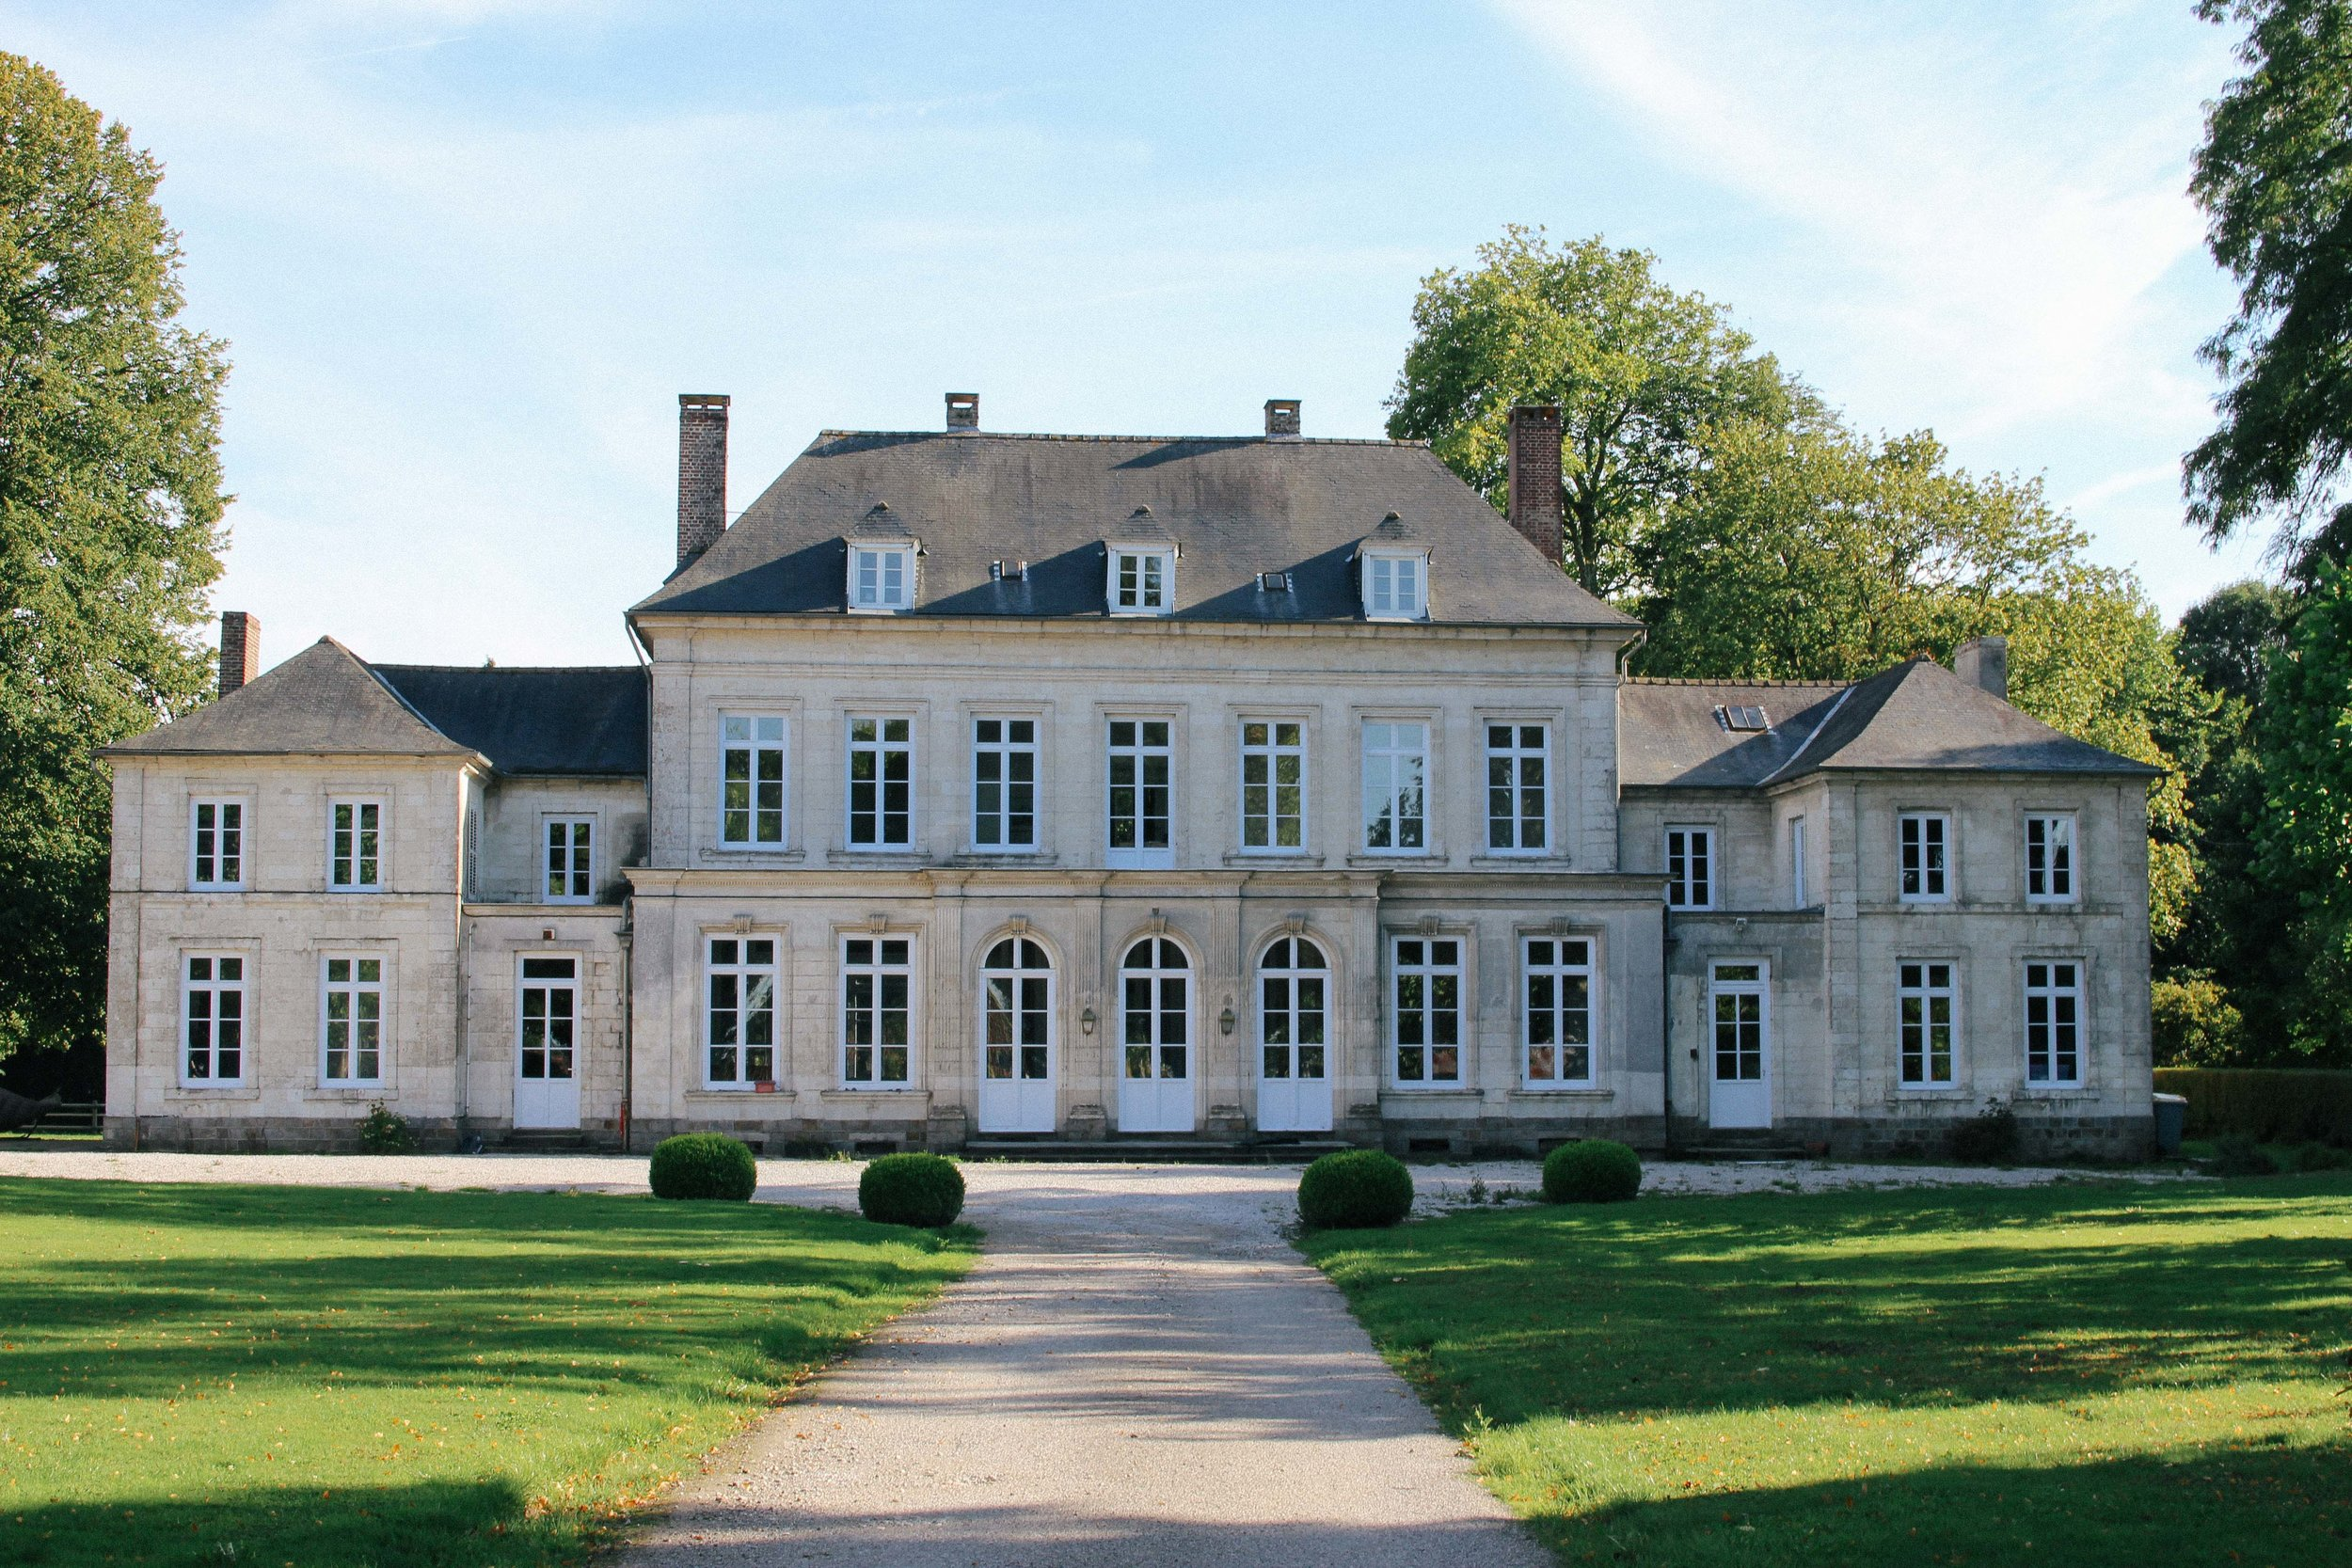 One of the châteaux I fell for...